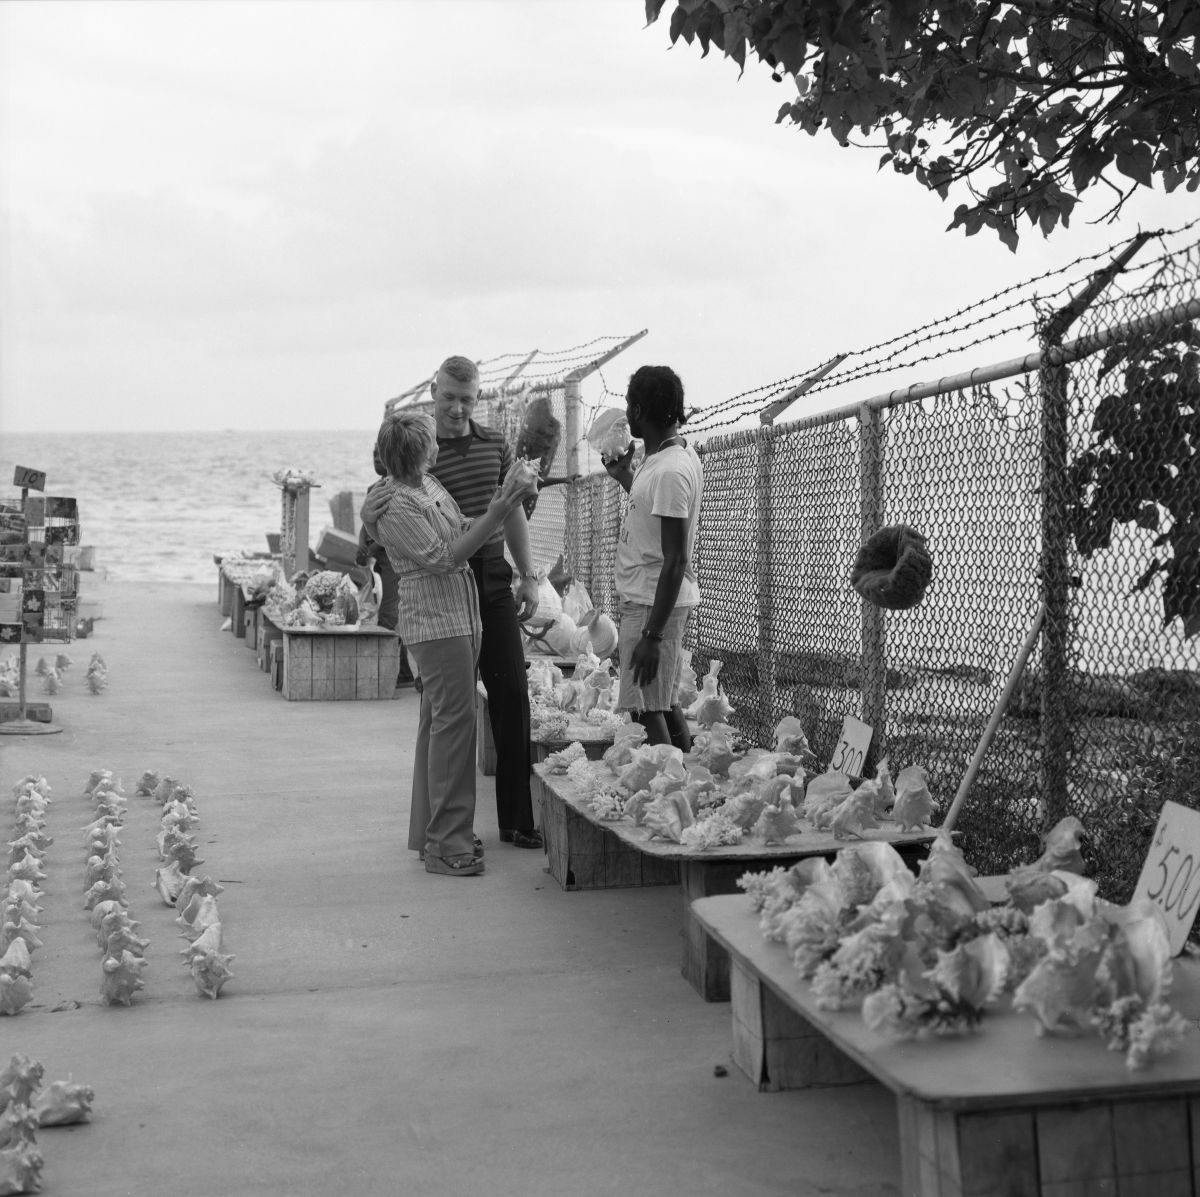 Street vendors at the southernmost point of the continental United States - Key West, Florida.